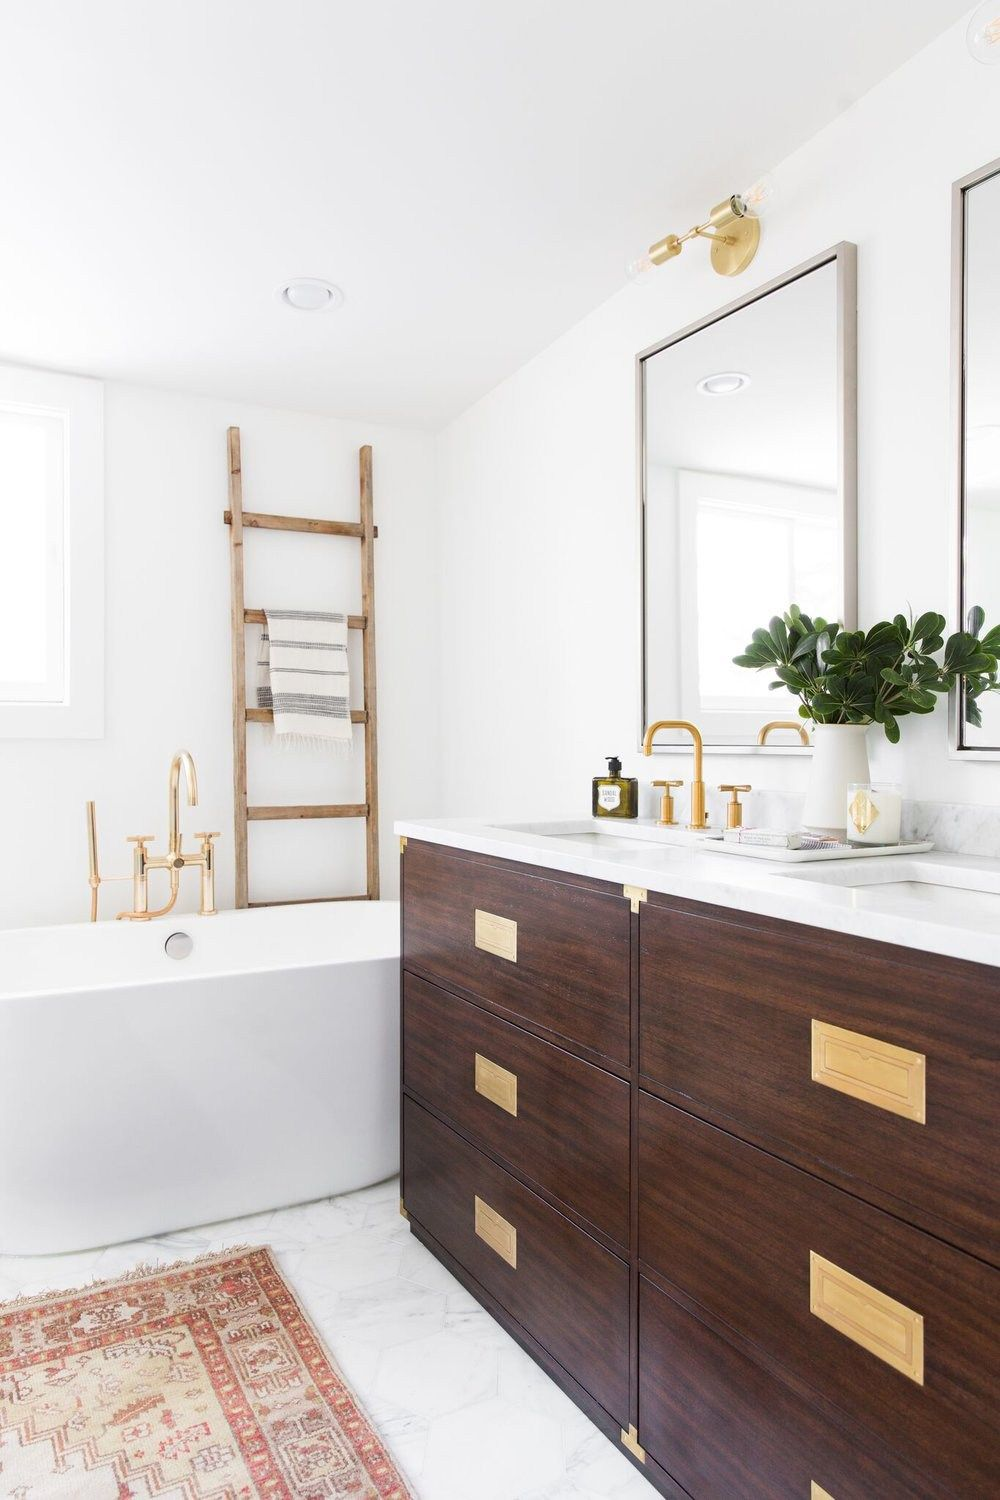 Designing Bathrooms 13 bathrooms i can't stop thinking about | design bathroom